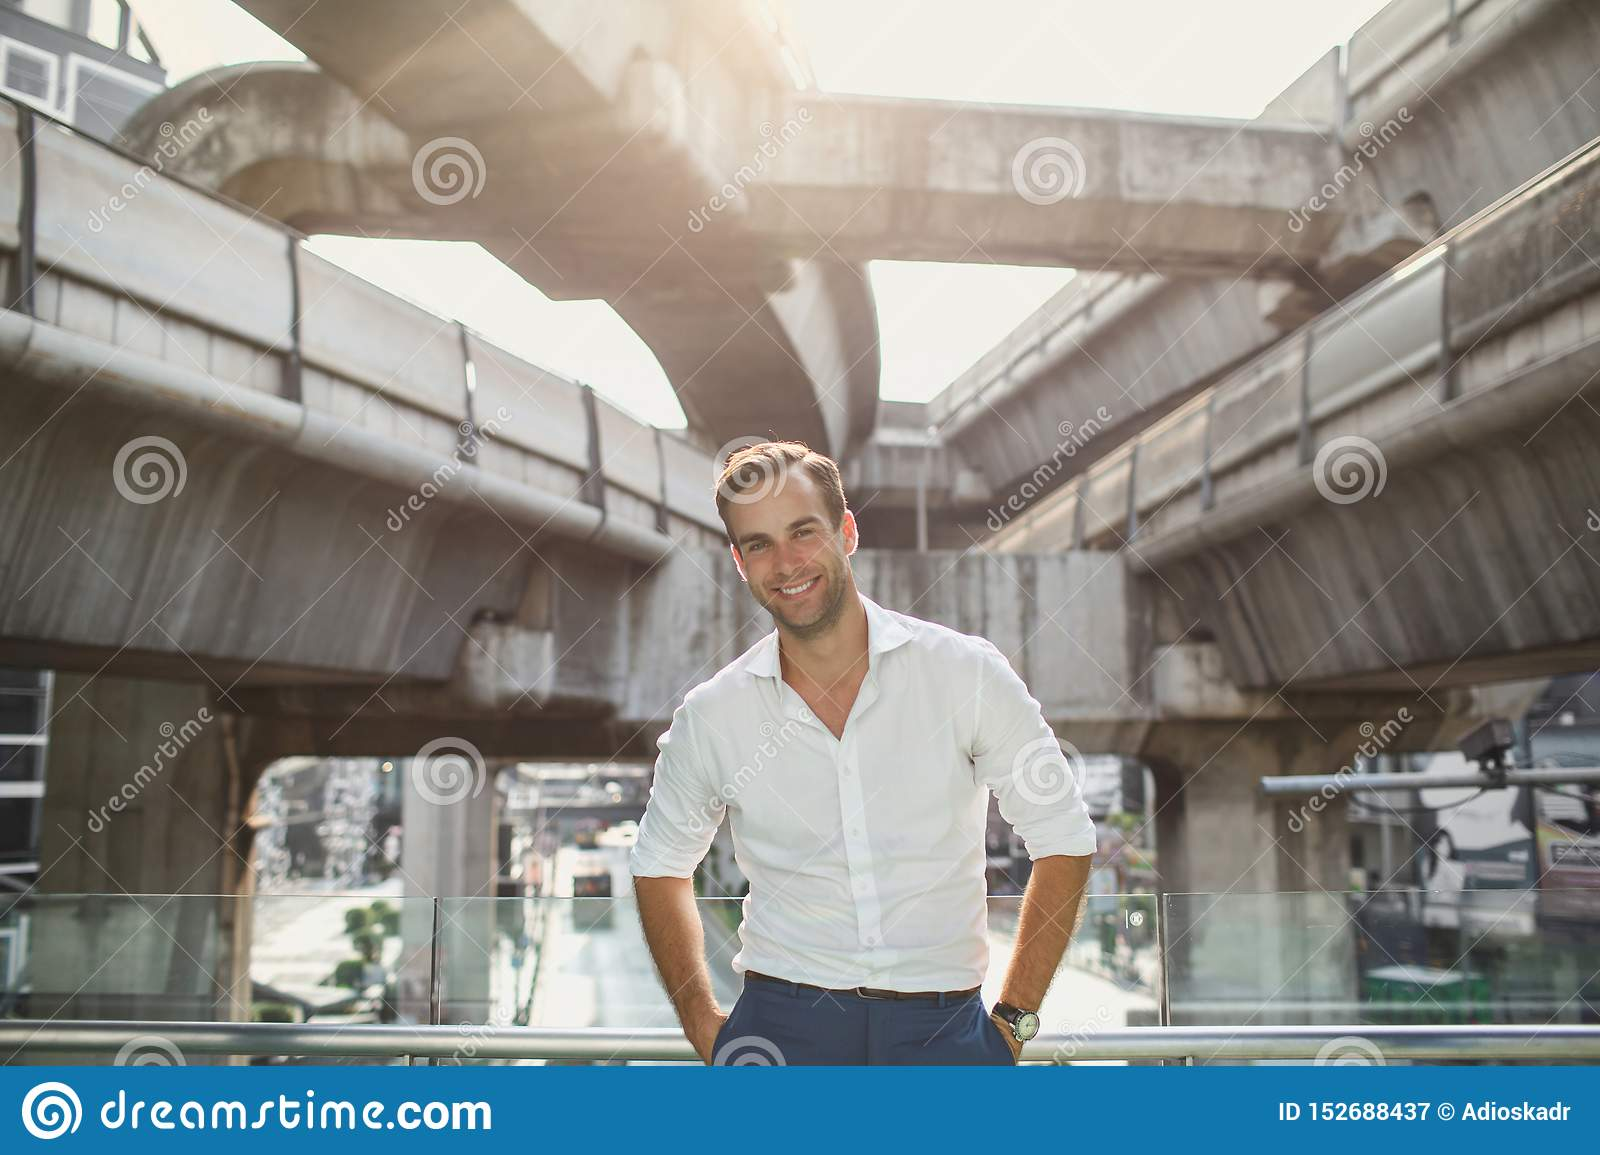 Handsome man in white shirt smiling standing near the mall